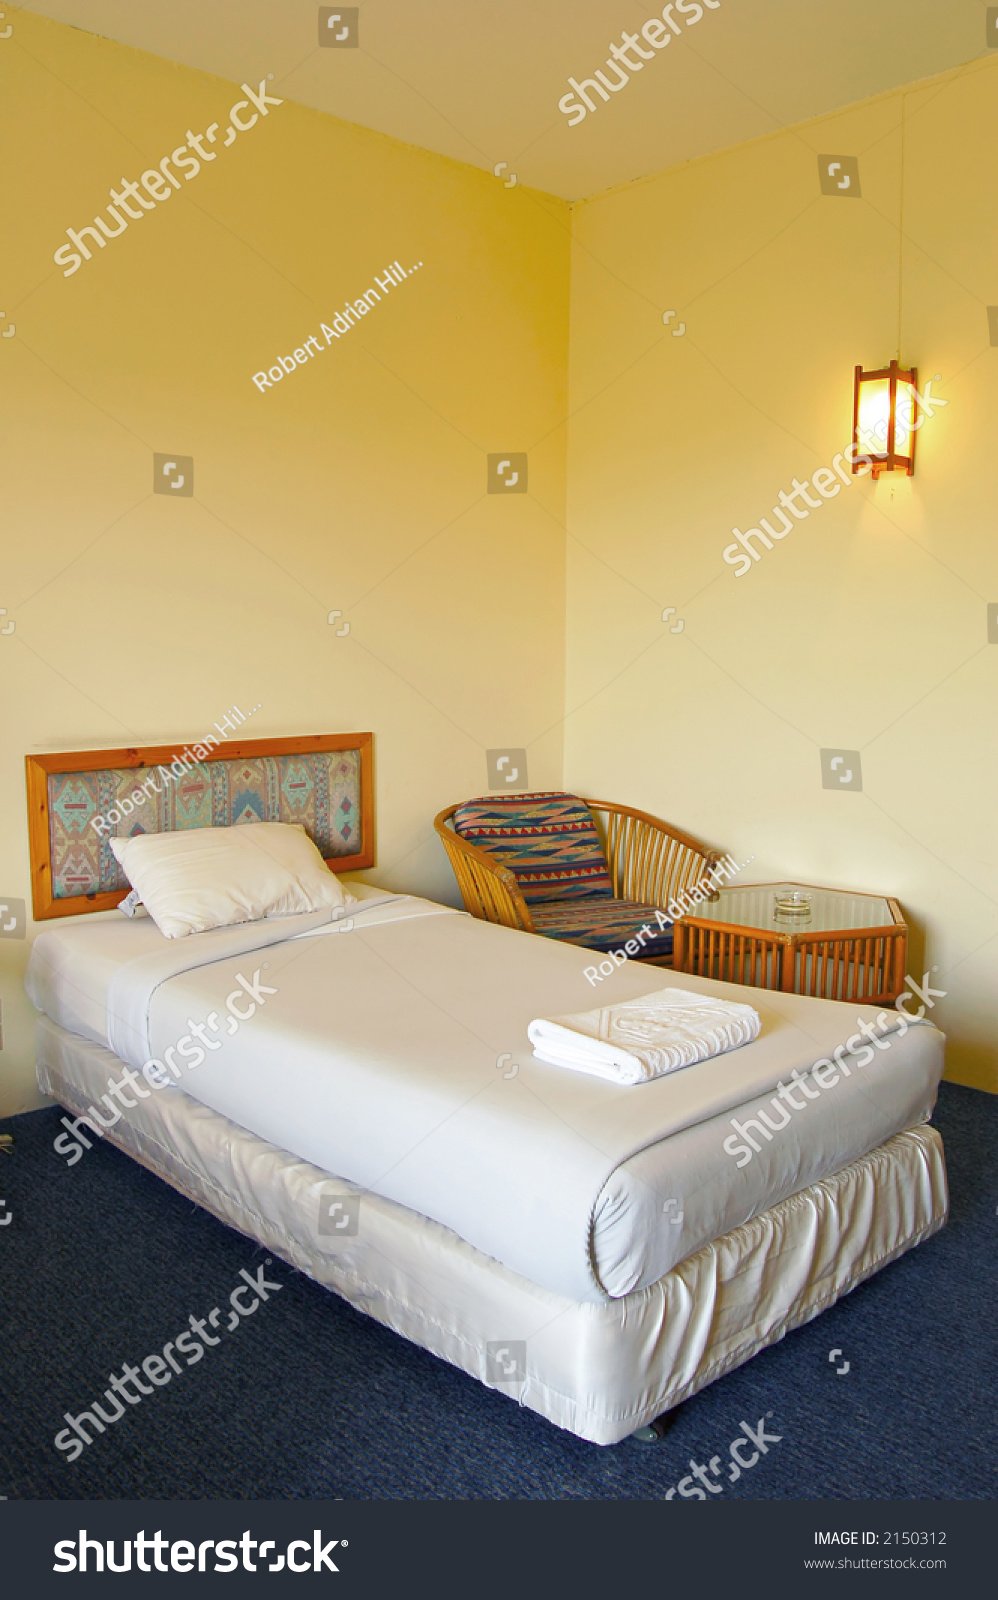 Hotel Room Photography: A Single Bed In A Hotel Room Stock Photo 2150312